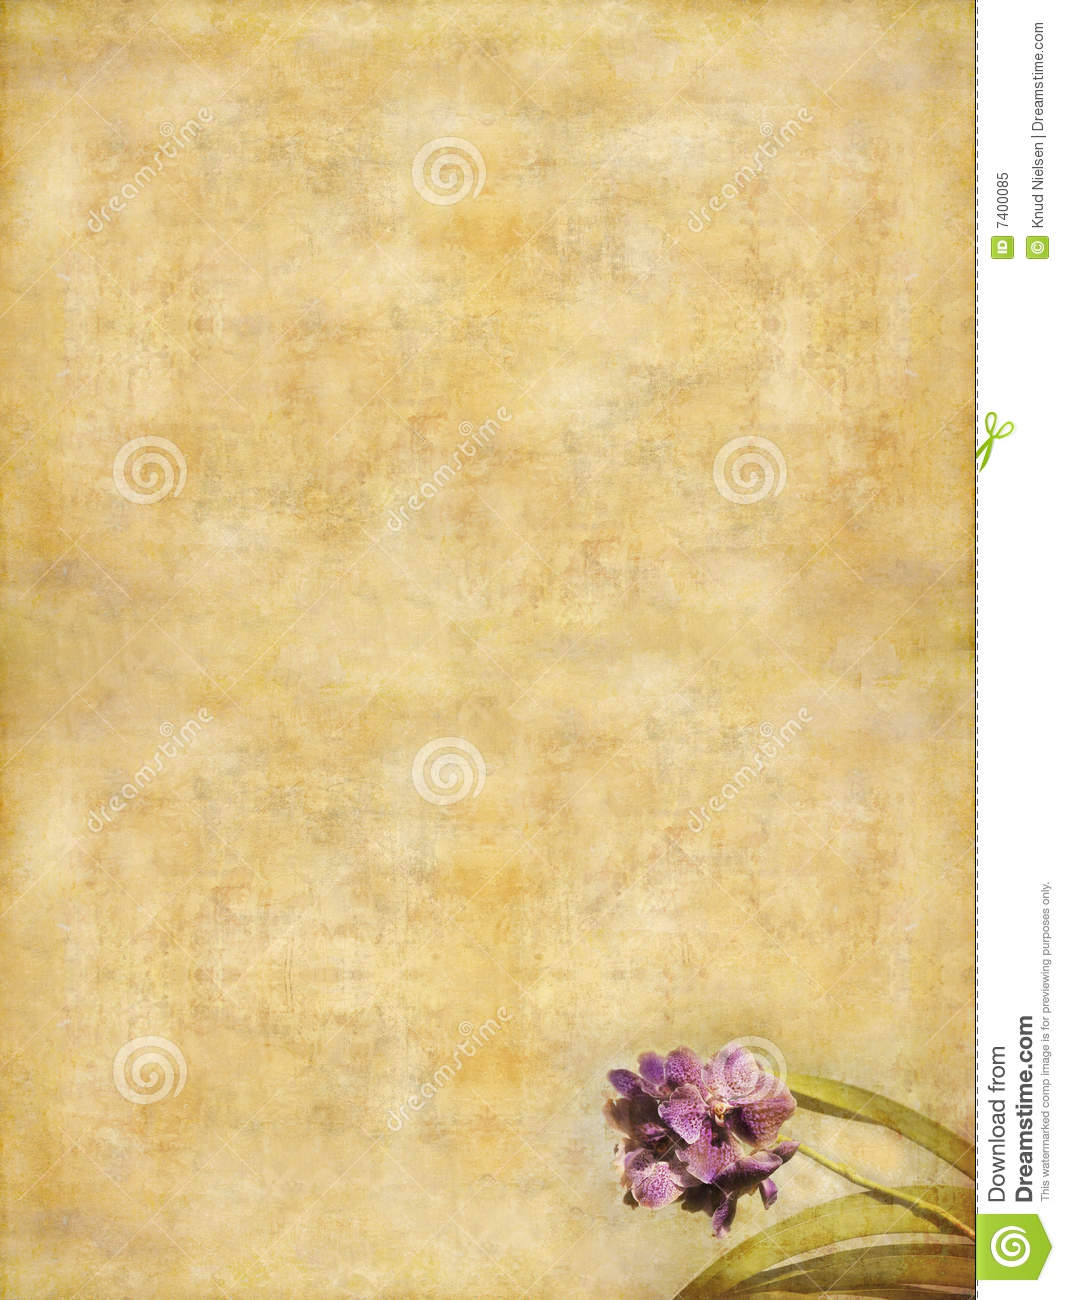 vintage writing paper royalty stock photo image  vintage writing paper